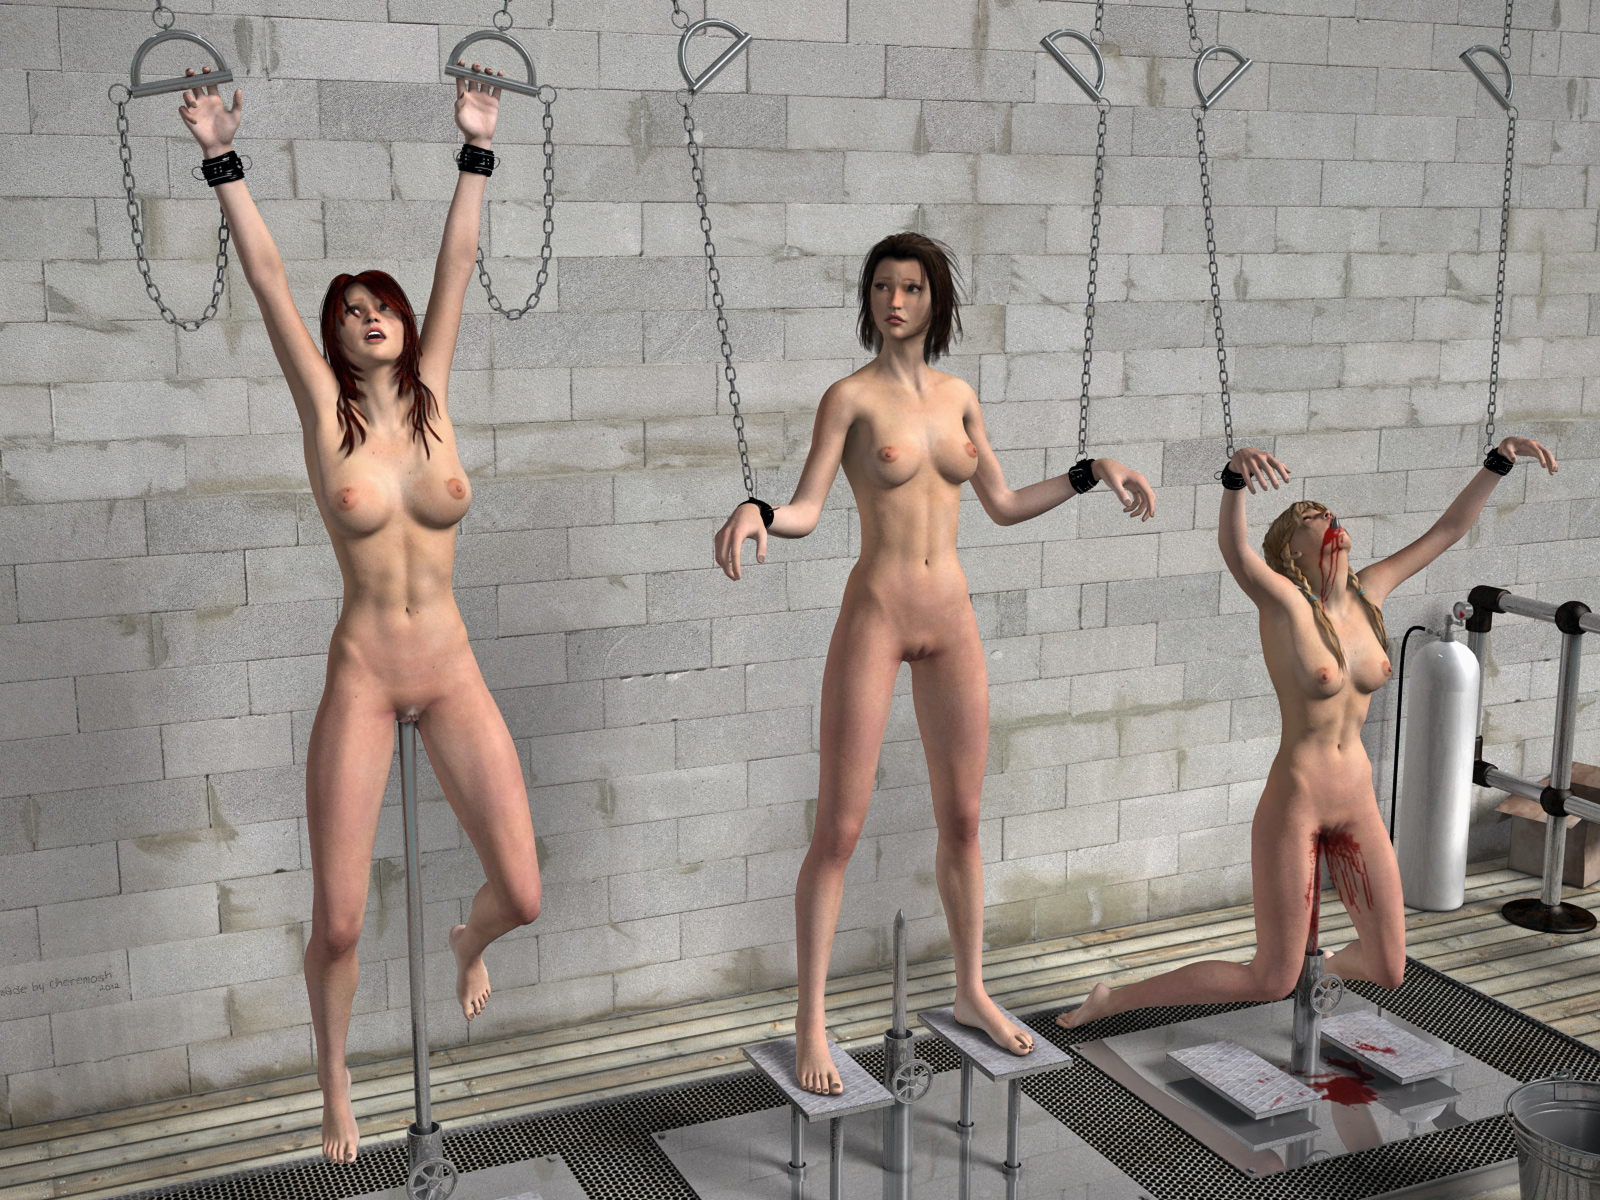 Erotic guillotine 3d nudes photos